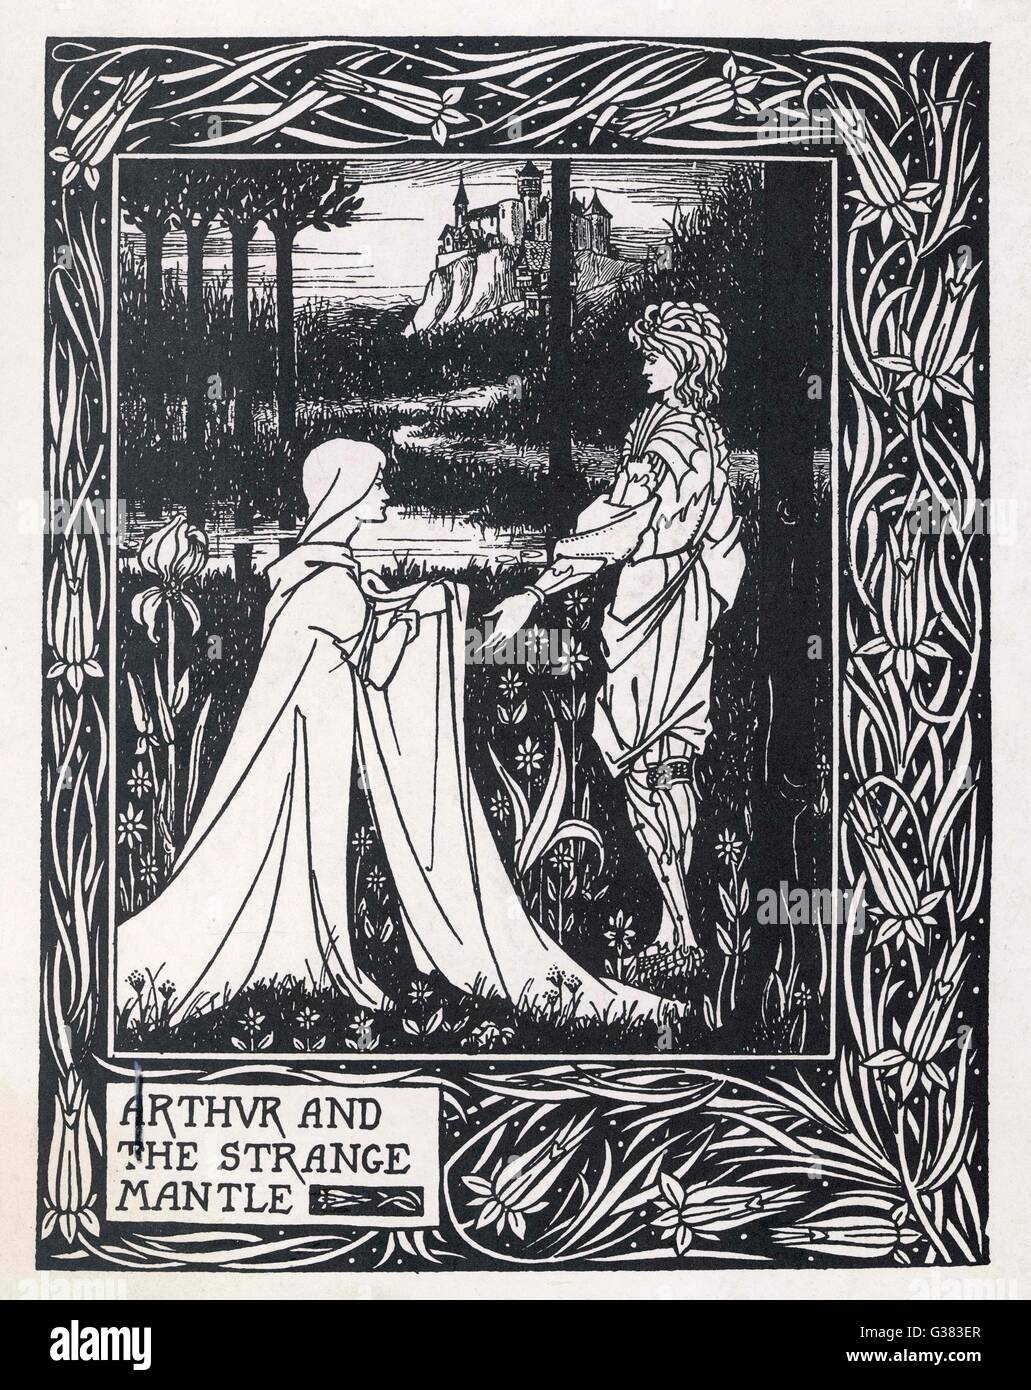 Arthur and the Strange Mantle         Date: 1893 - 1894 - Stock Image